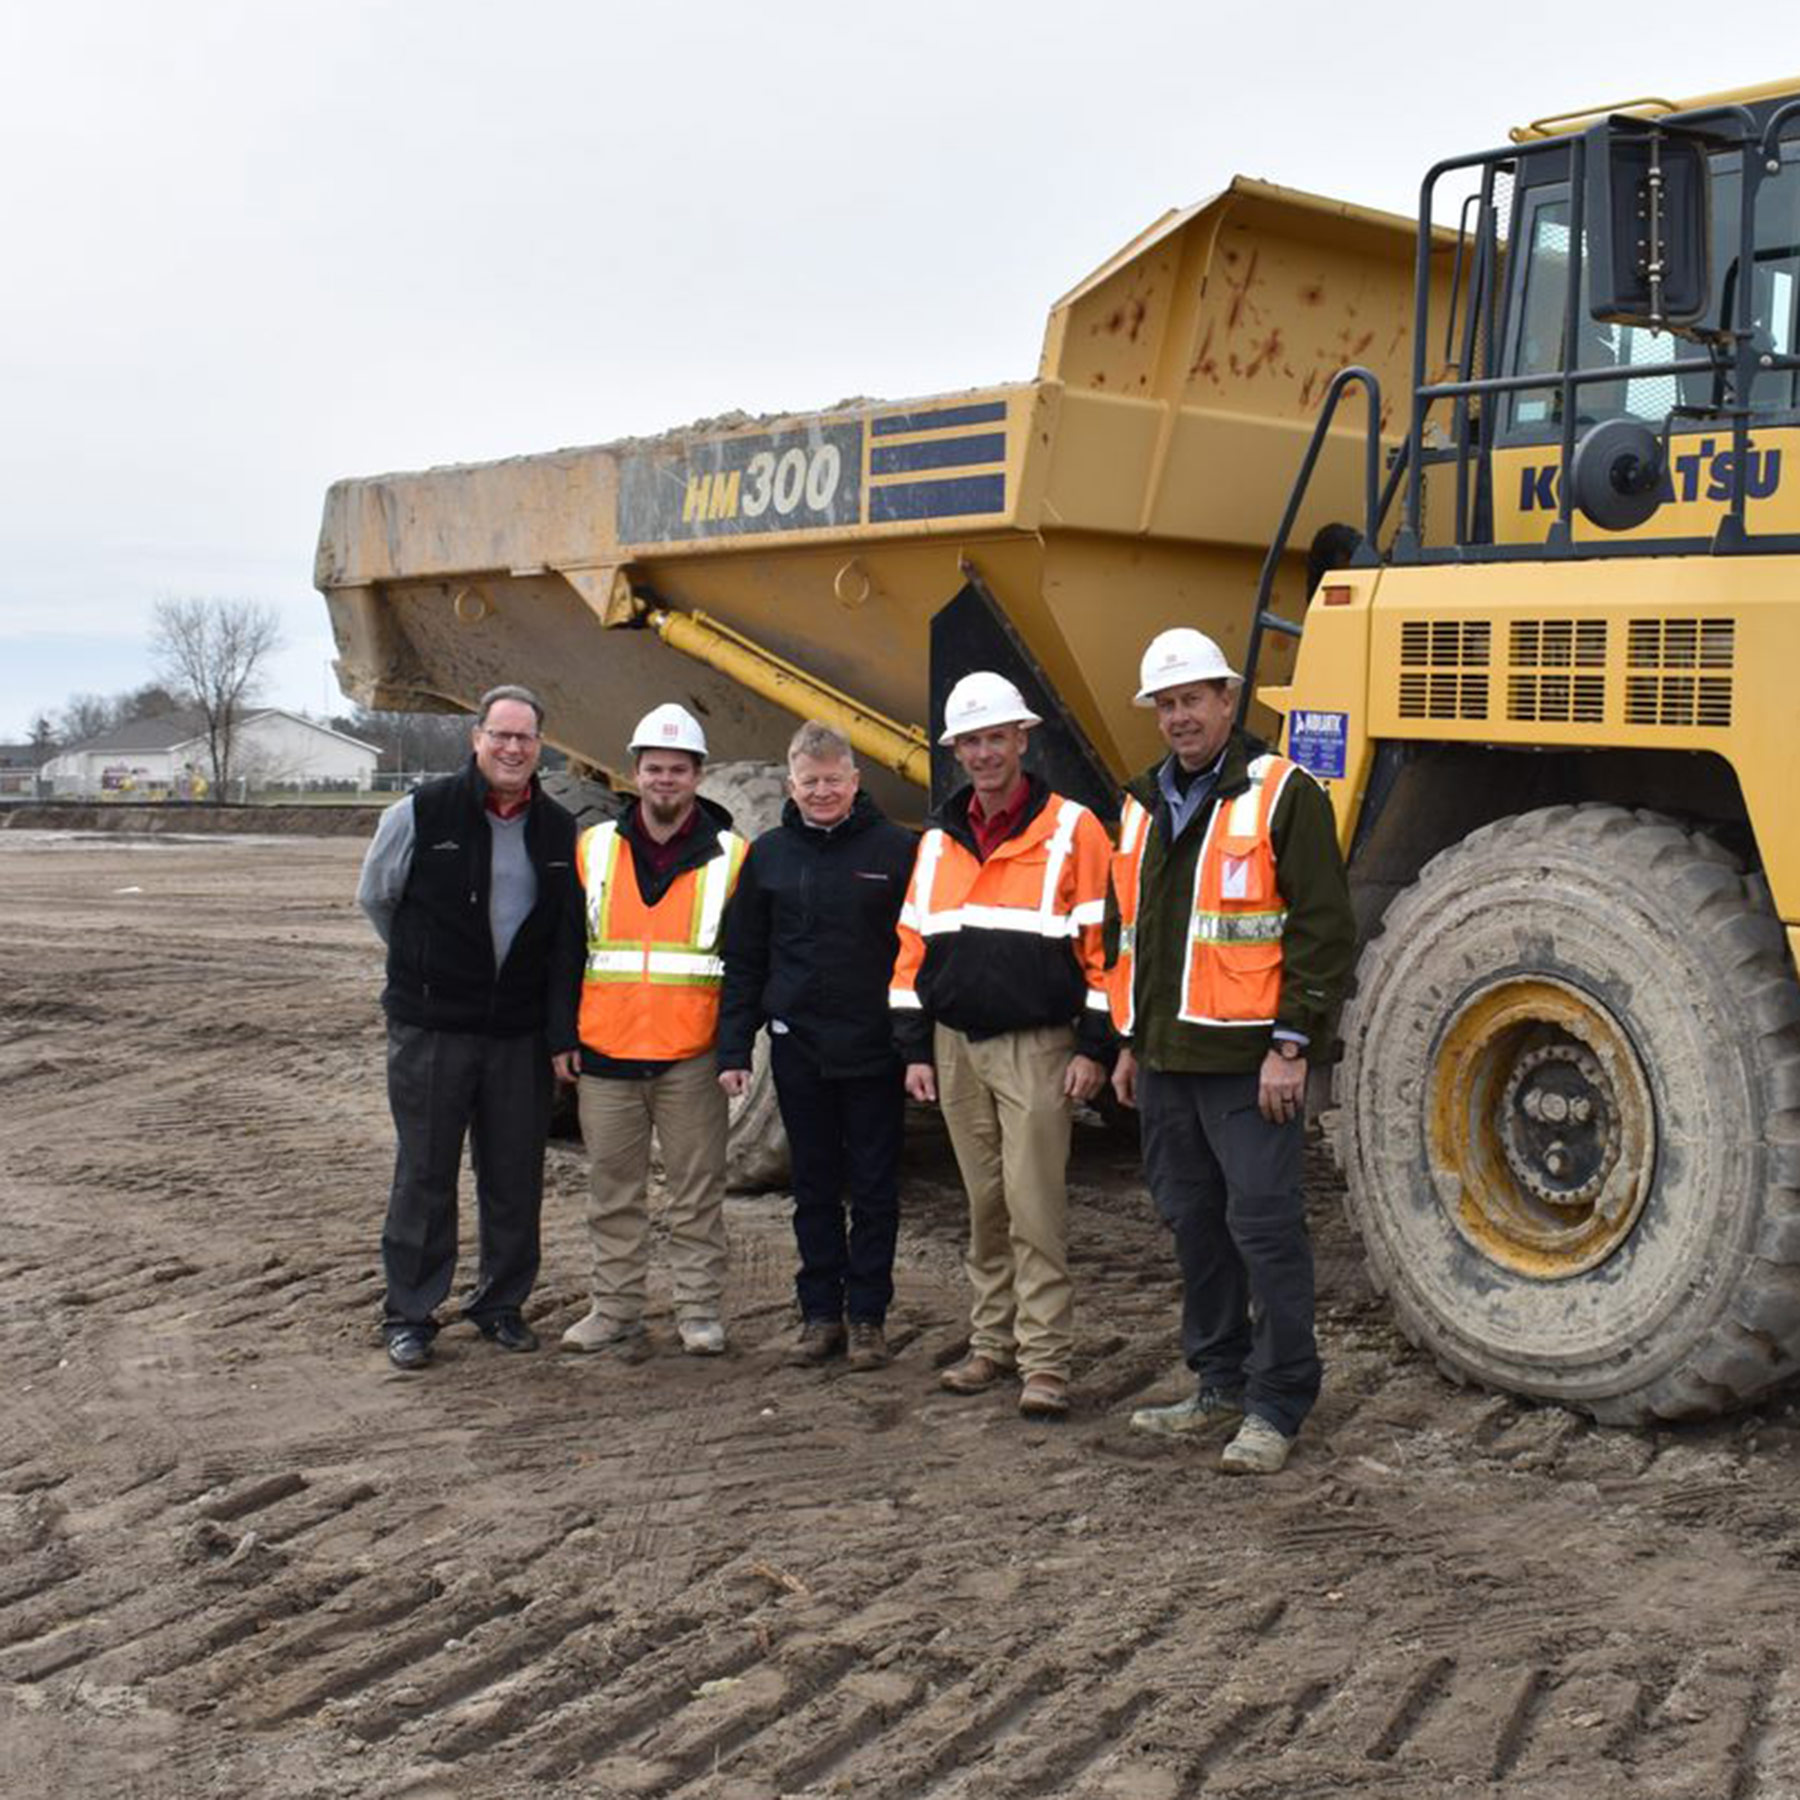 The Square at Merritt Mill Breaks Ground